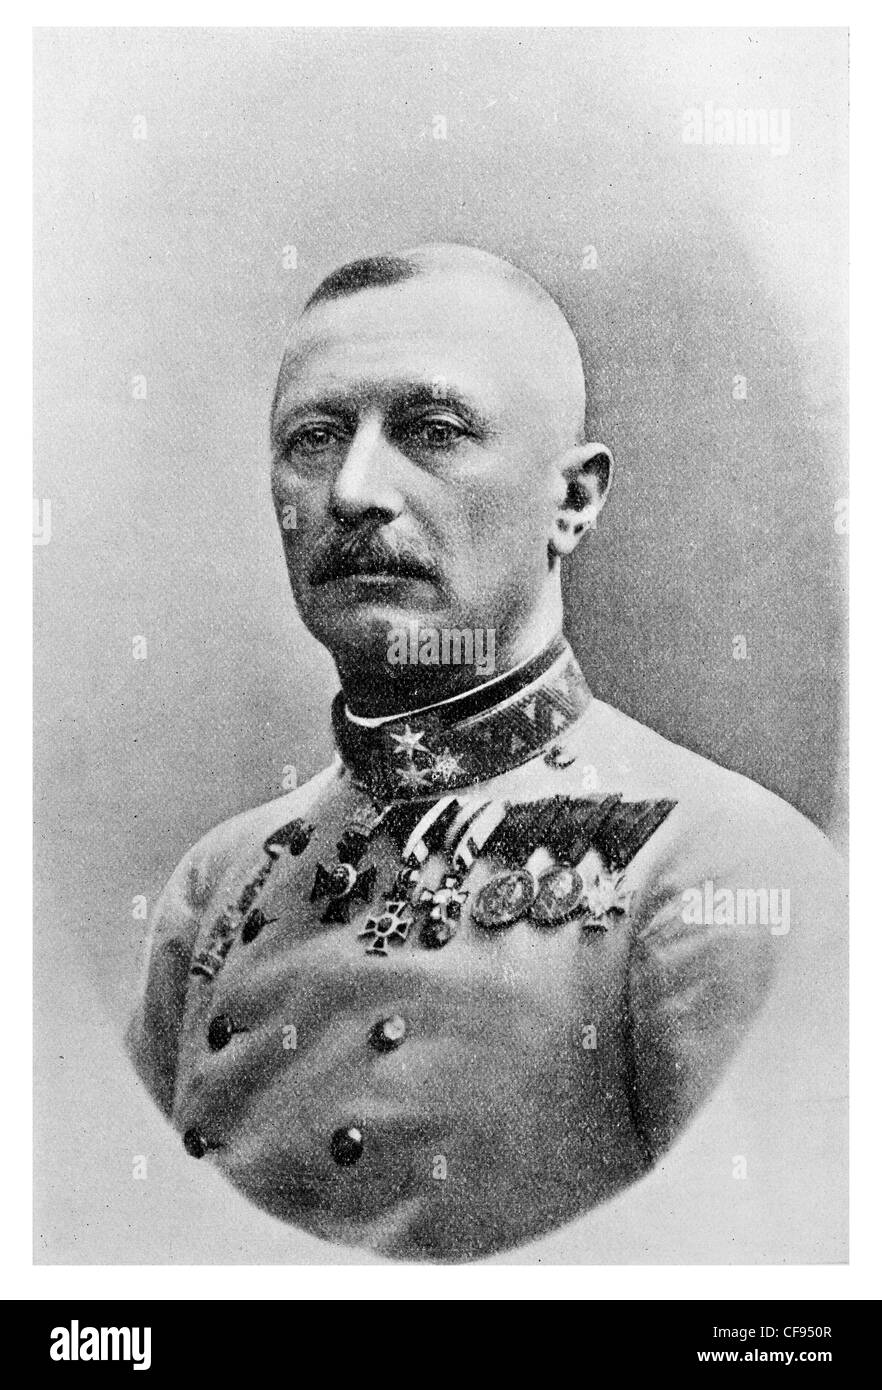 General Oskar Potiorek officer of the Austro-Hungarian Army, who served as Governor of Bosnia and Herzegovina - Stock Image